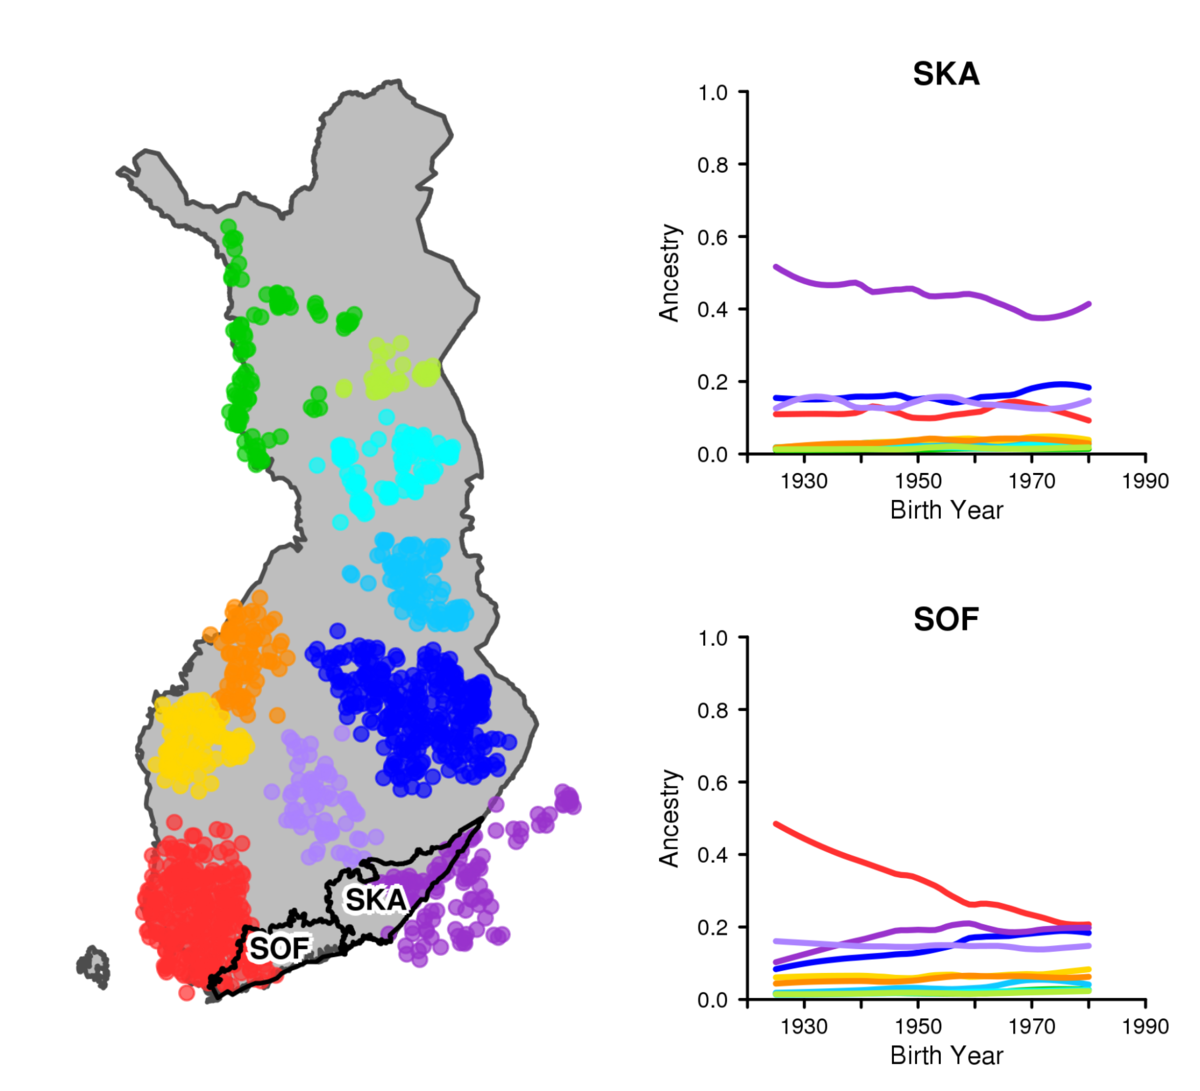 Graph shows how in Southern Karelia the ancestry proportions have remained the same during the study period, while in Southern Finland the proportion of the southwestern ancestry has decreased and the proportions of several other ancestries have increased